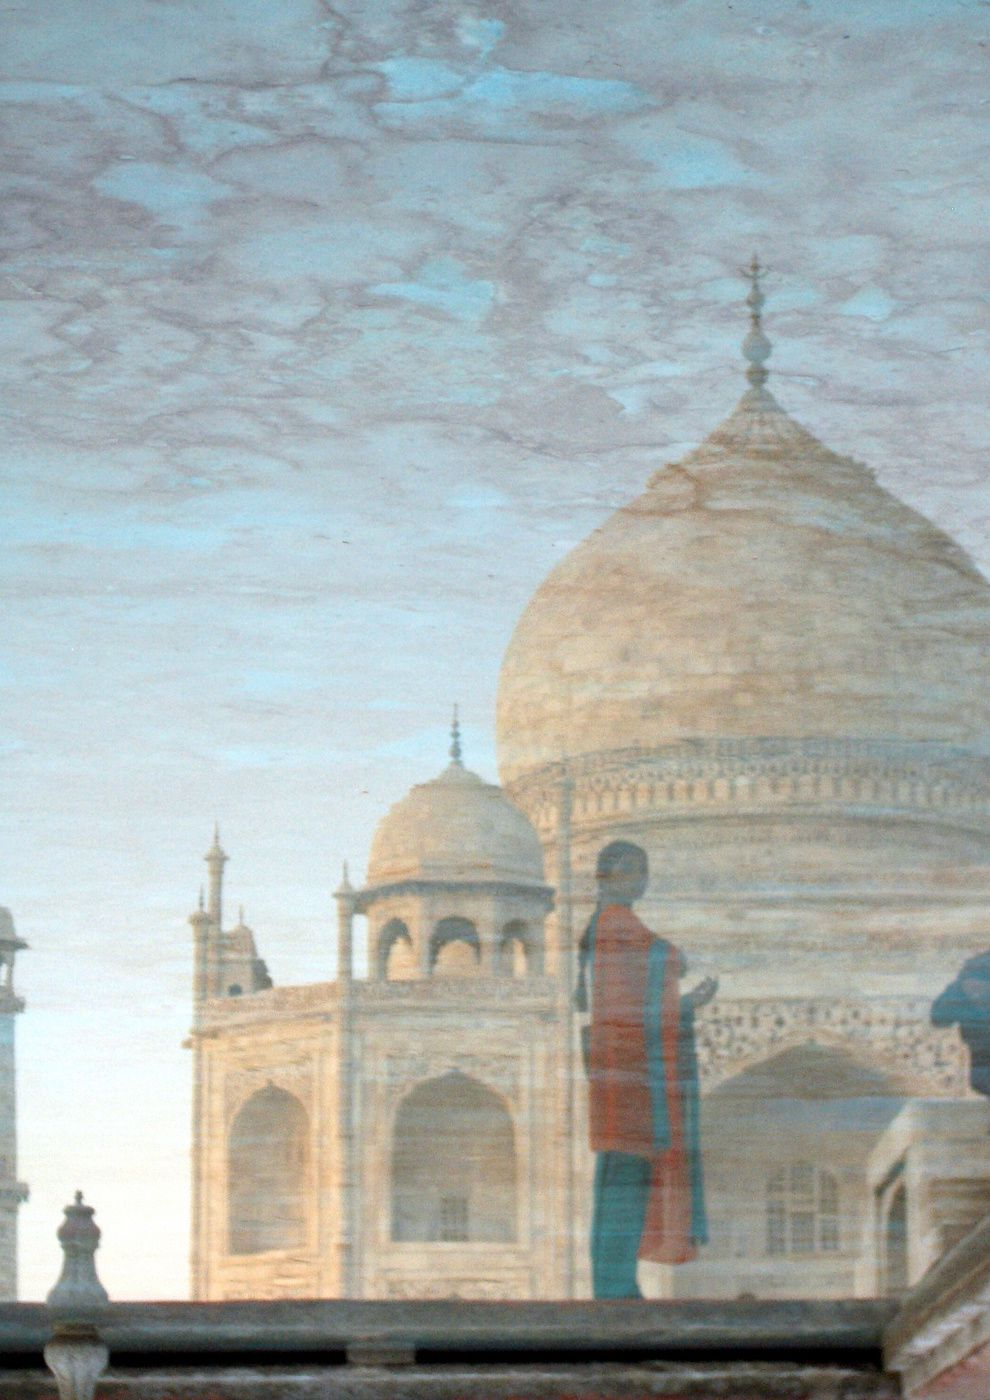 "27. ""Reflection of the Taj Mahal."" Reflection of a woman and the Taj Mahal. Agra, India. (Degrey Phillips / National Geographic Traveler Photo Contest)"